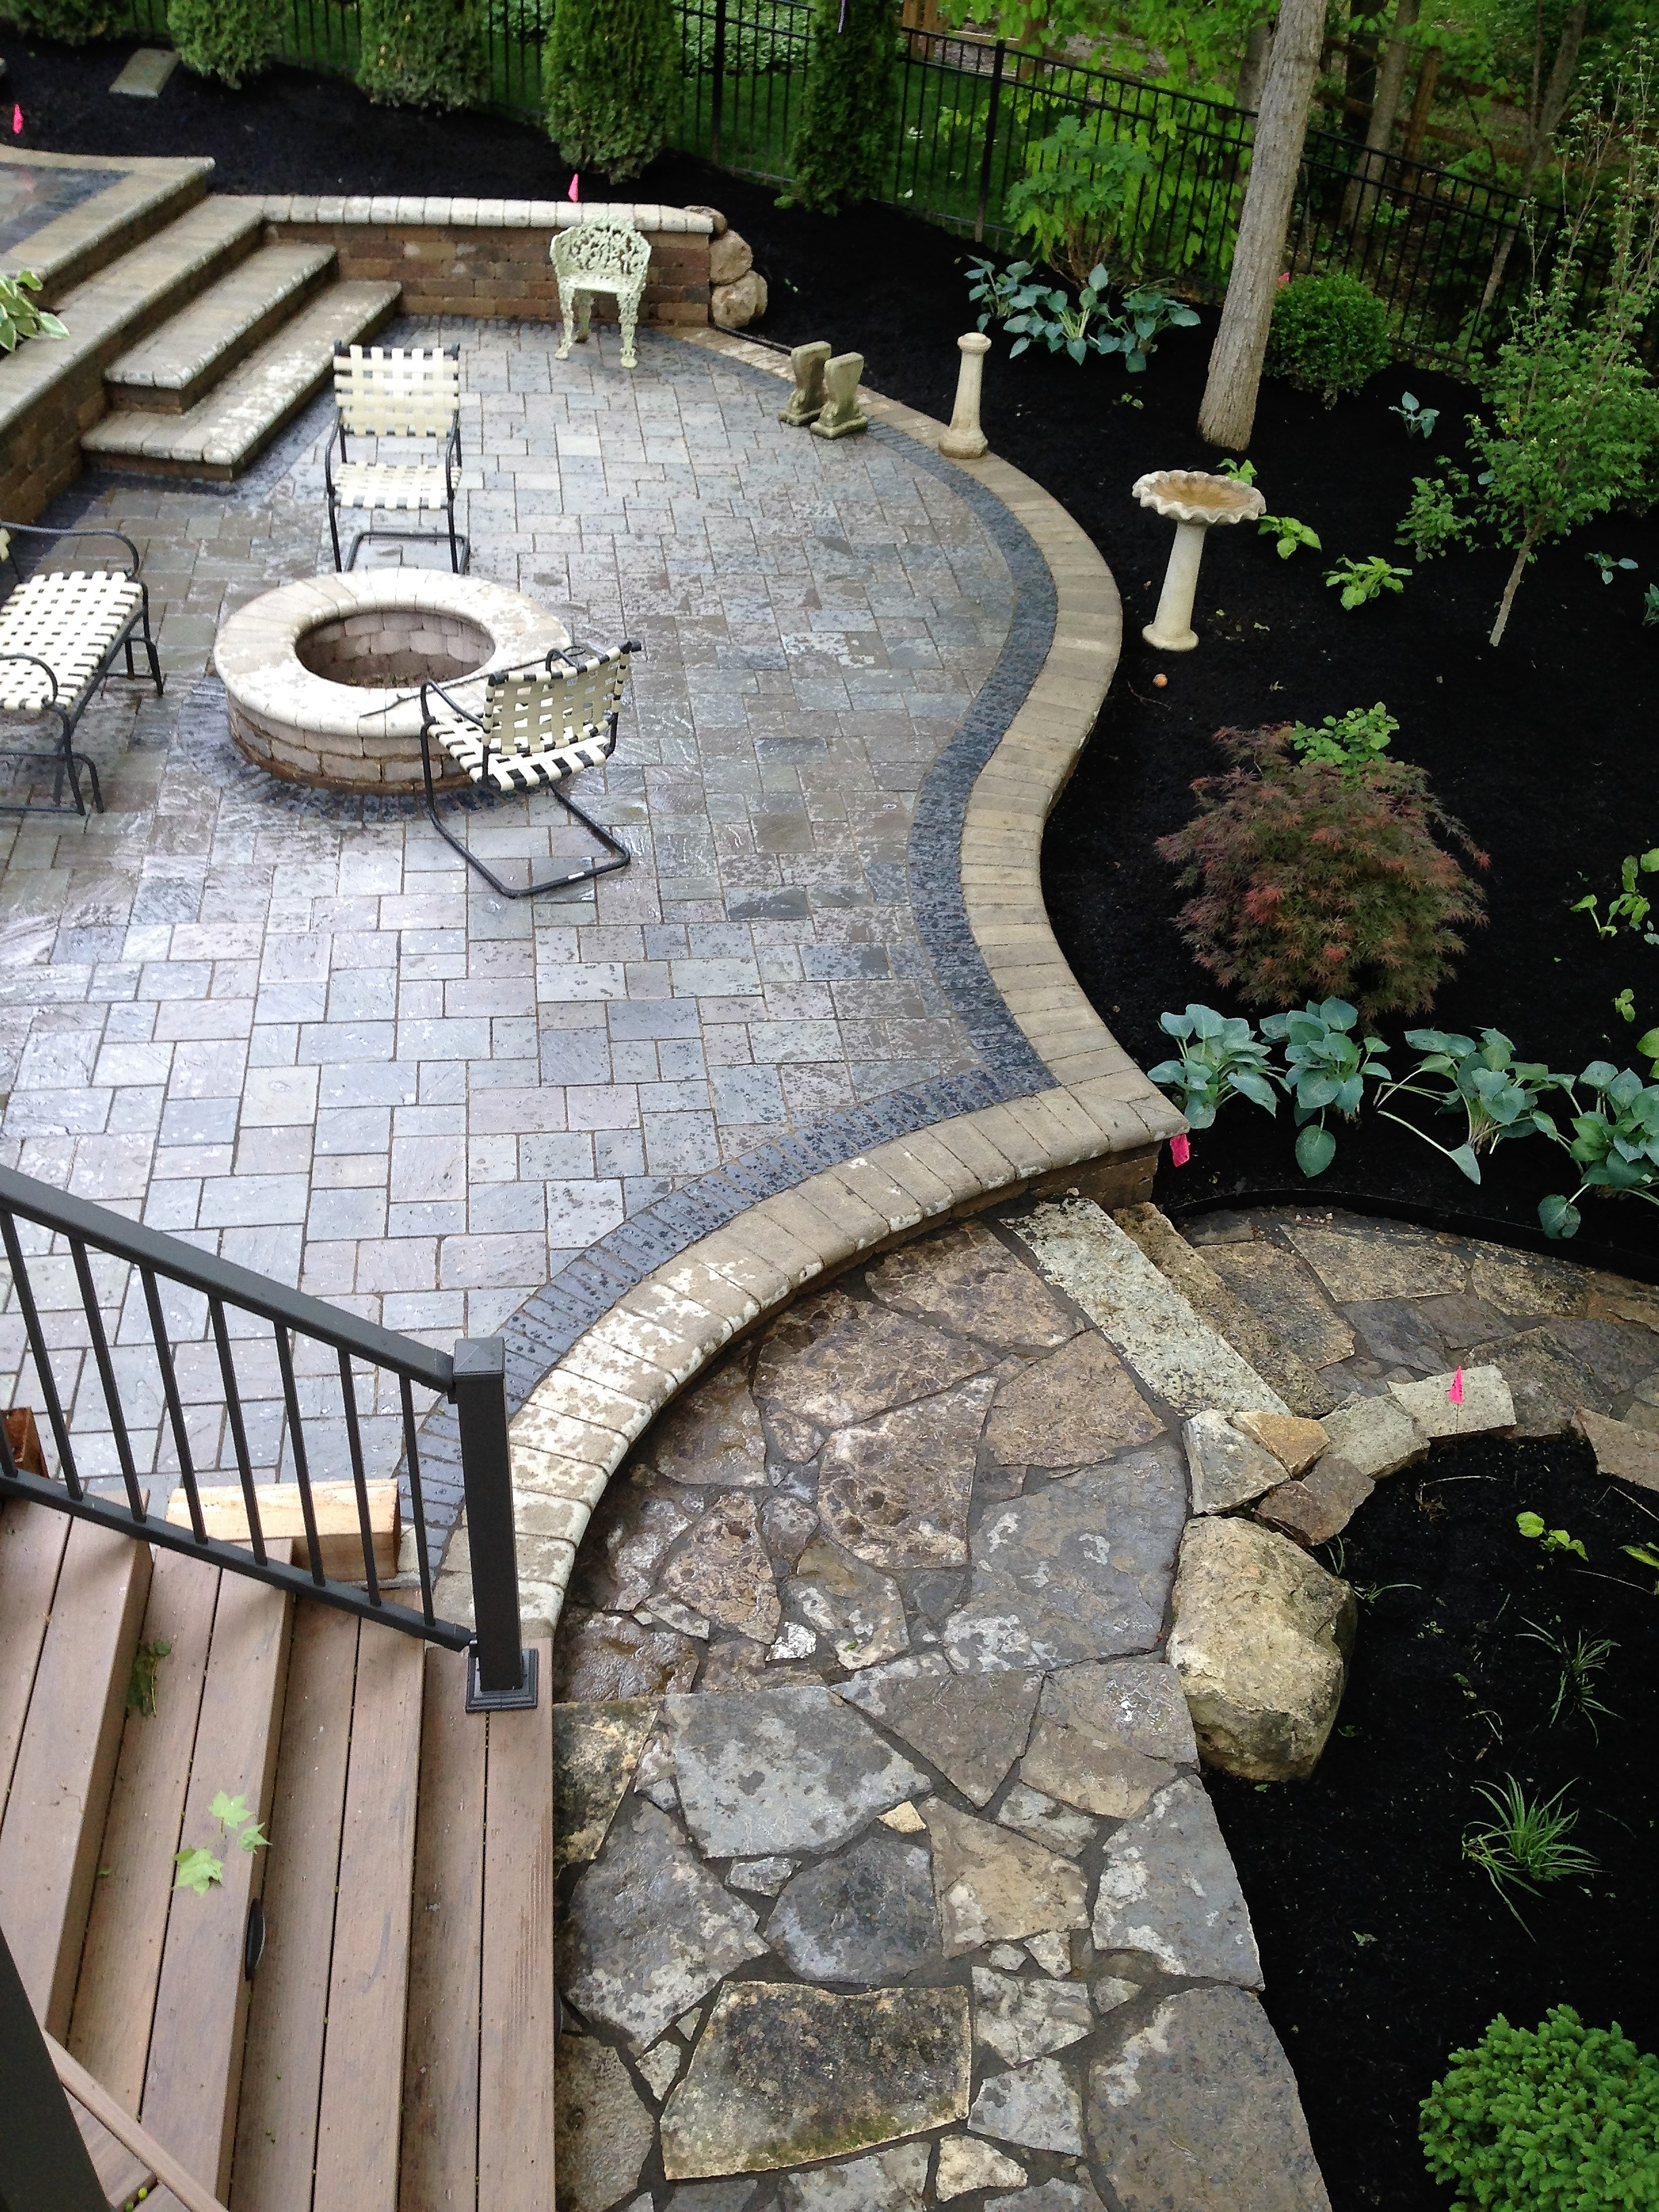 The Home And Garden Show Is An Event Designed For Homeowners In All Stages  Of Remodeling, Landscaping And Decorating Their Homes.